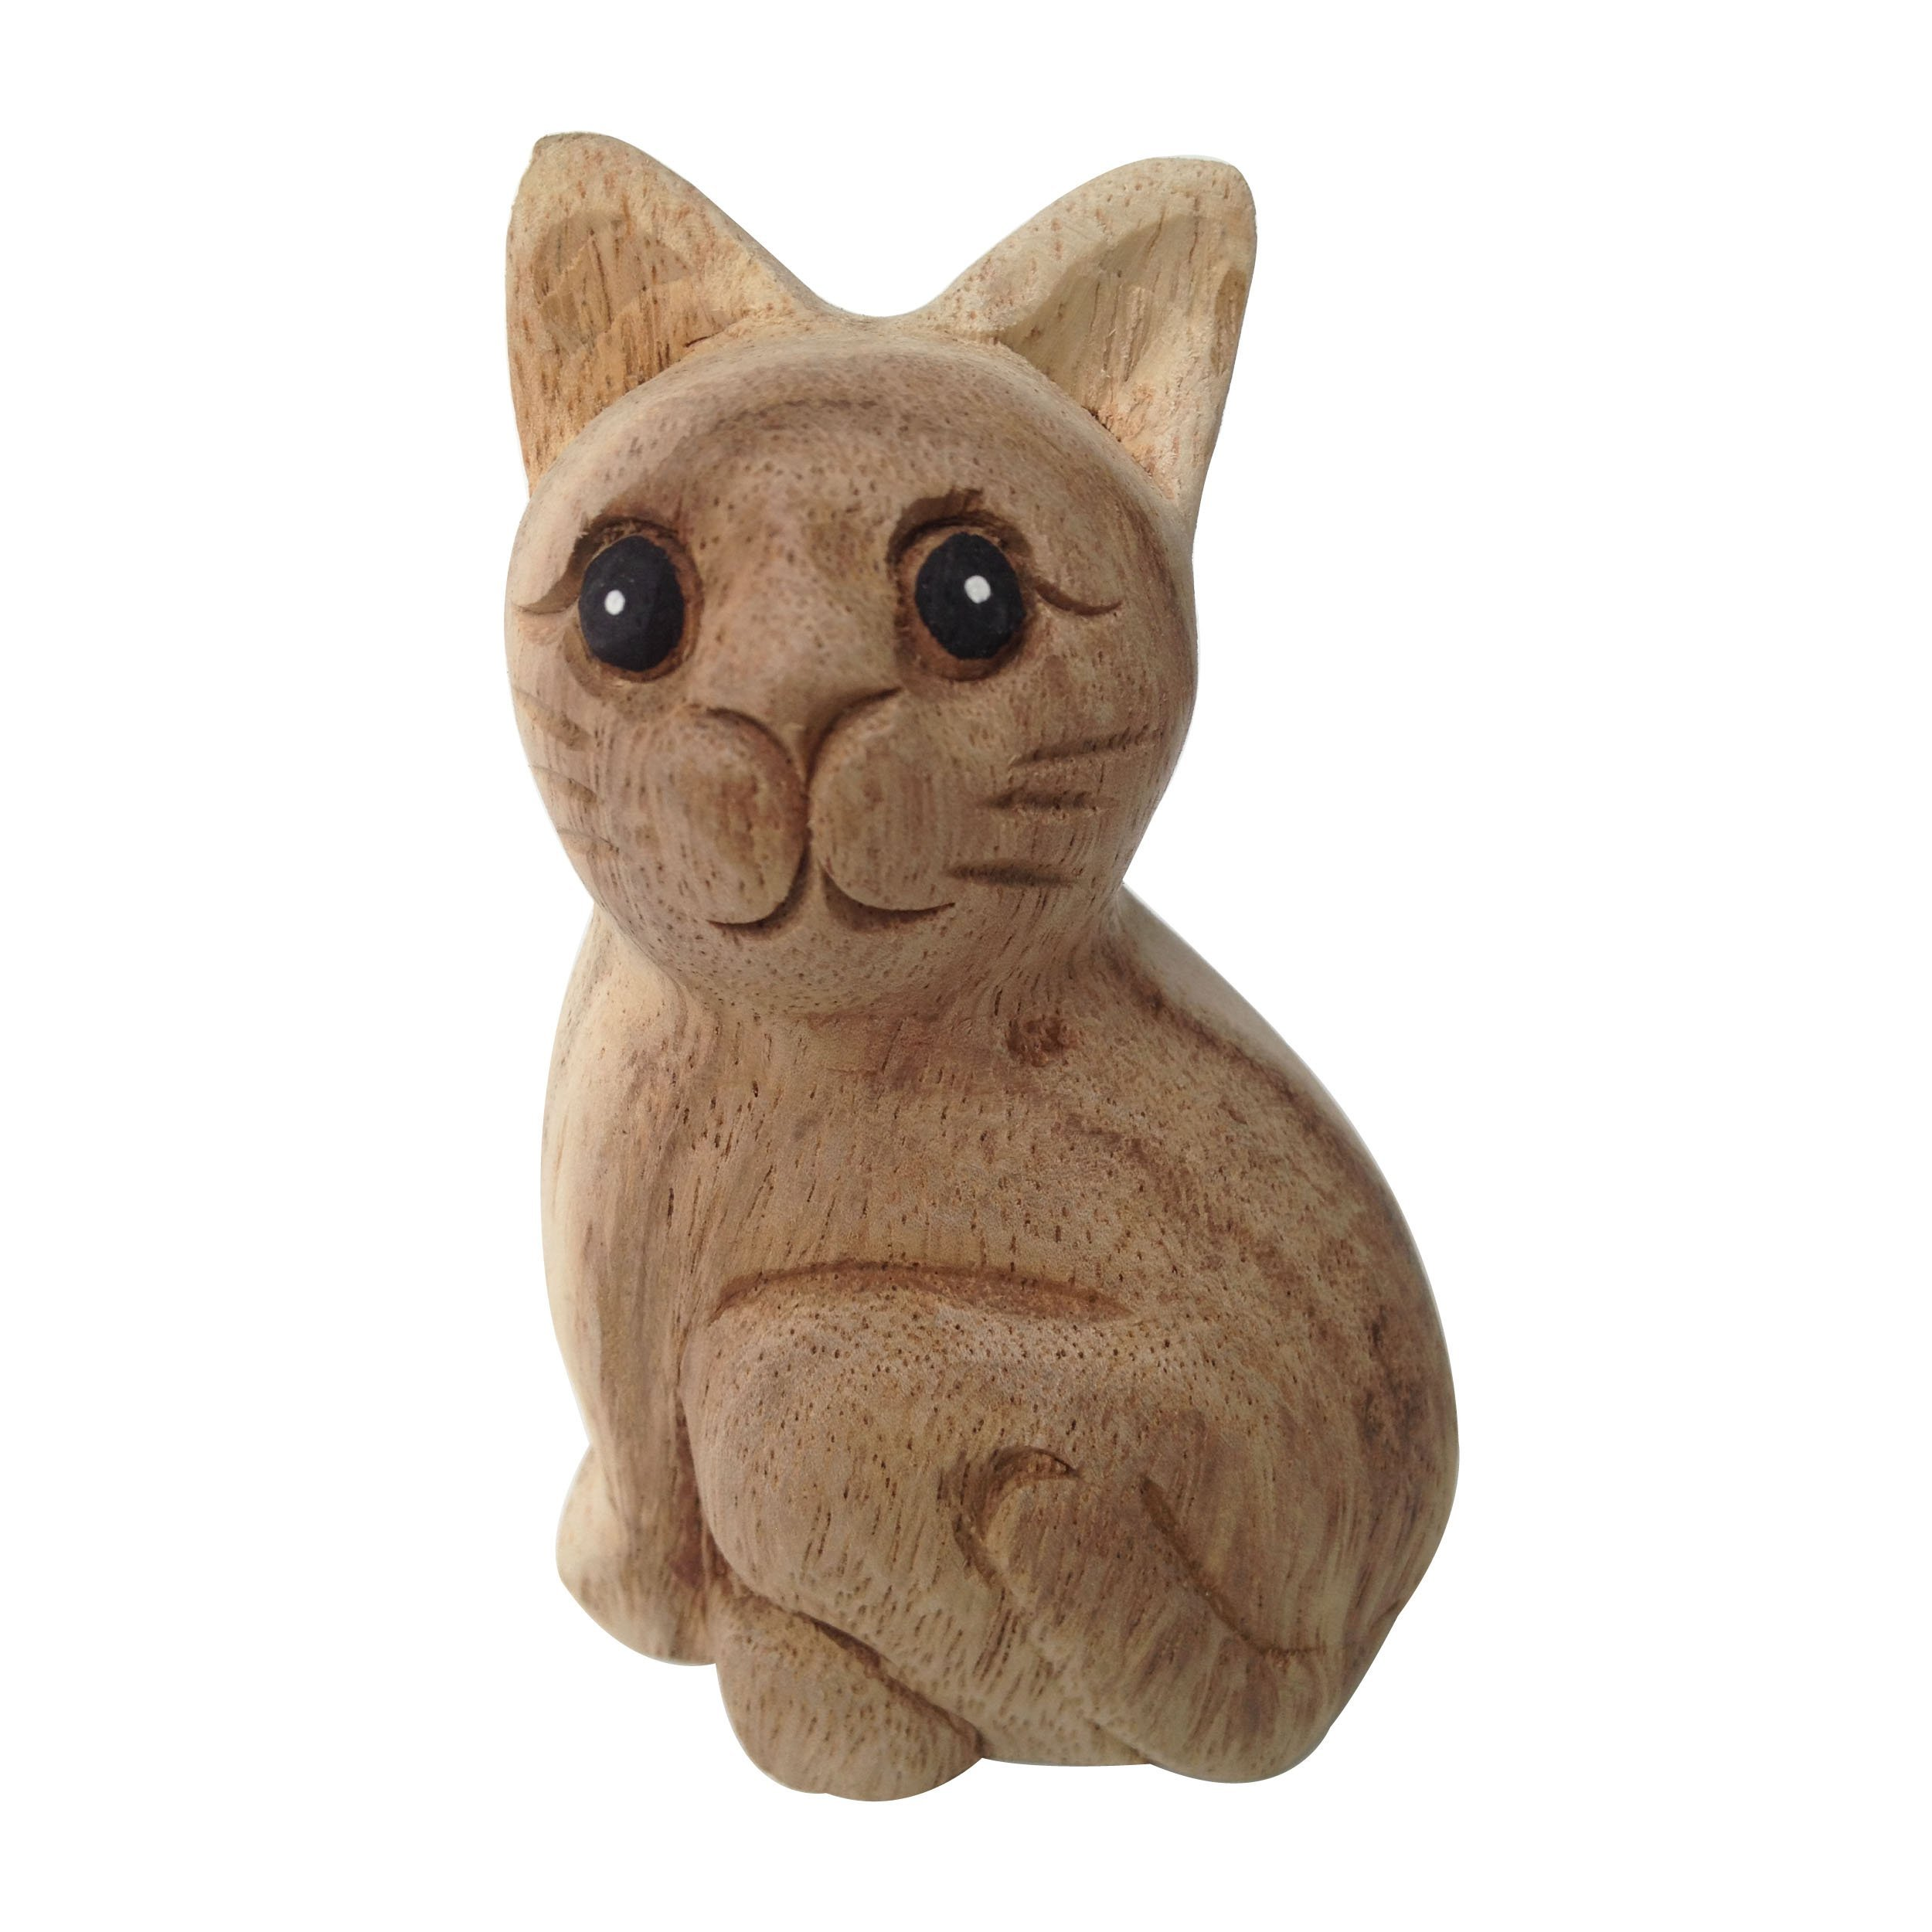 Wood For Décor Wooden Animal Carving Cat Décor Mimosa Wood in Modern Style 5